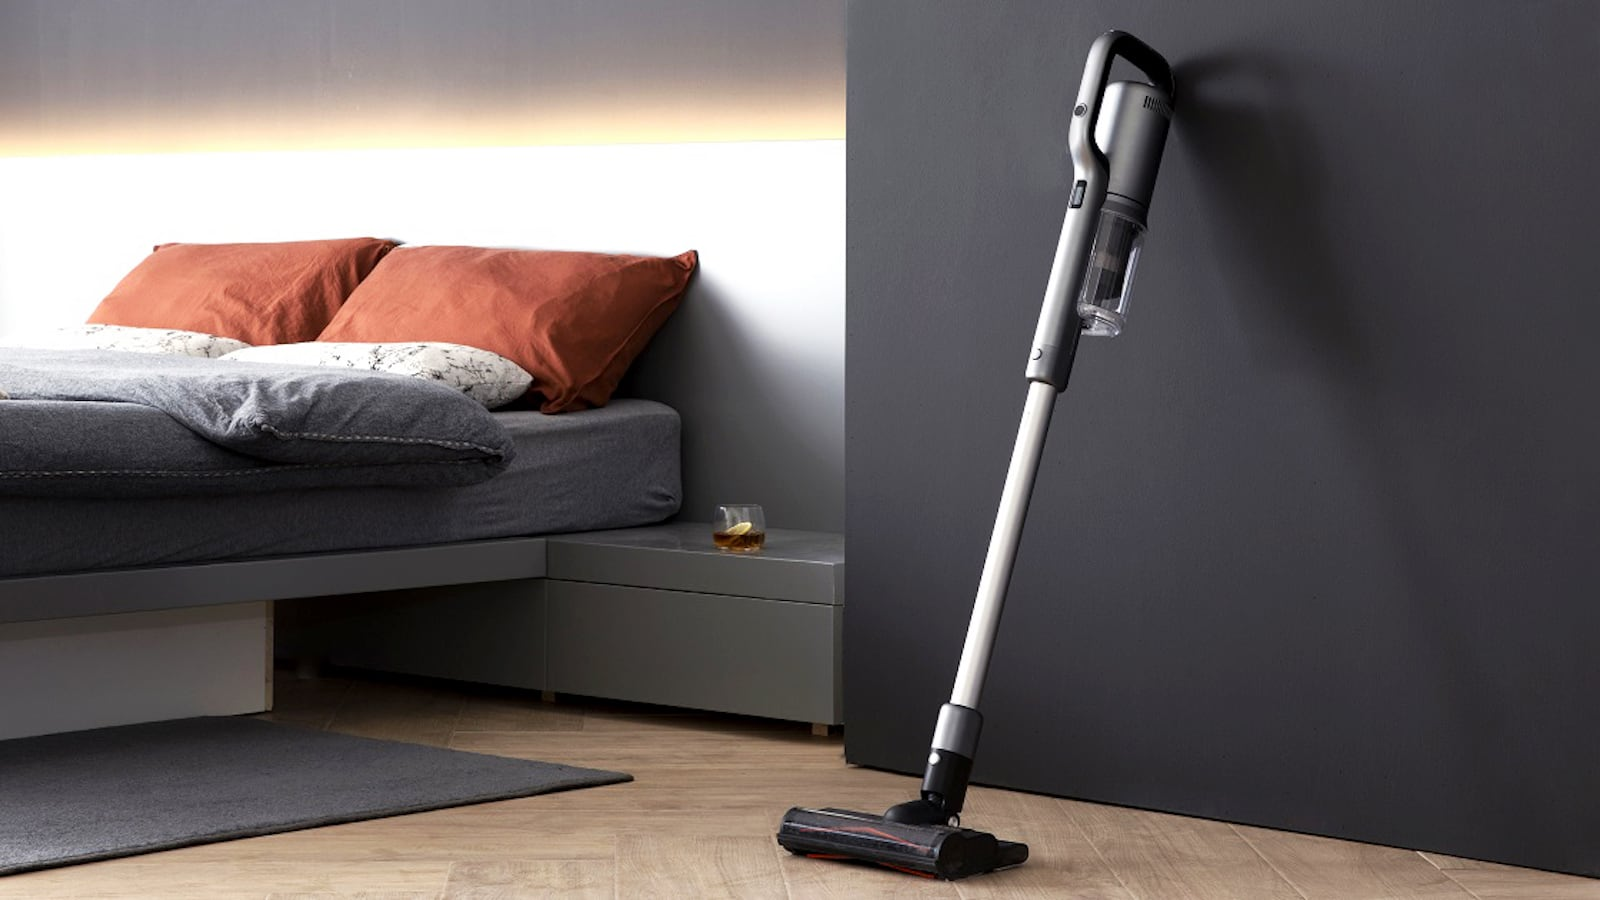 ROIDMI X30 Pro Mop and Vacuum Cleaner Combo